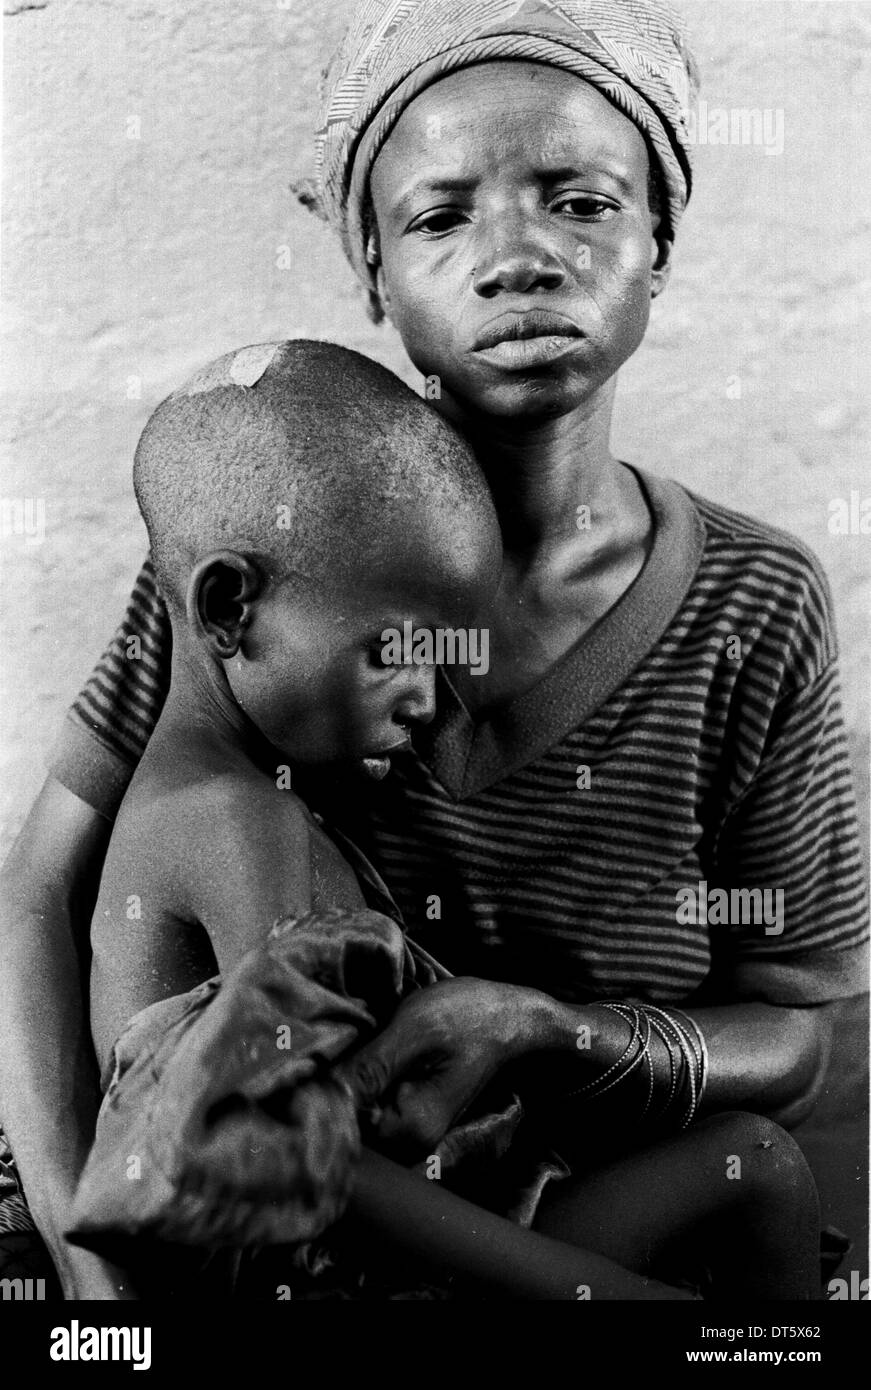 displaced mother and child in Sierra Leone - Stock Image